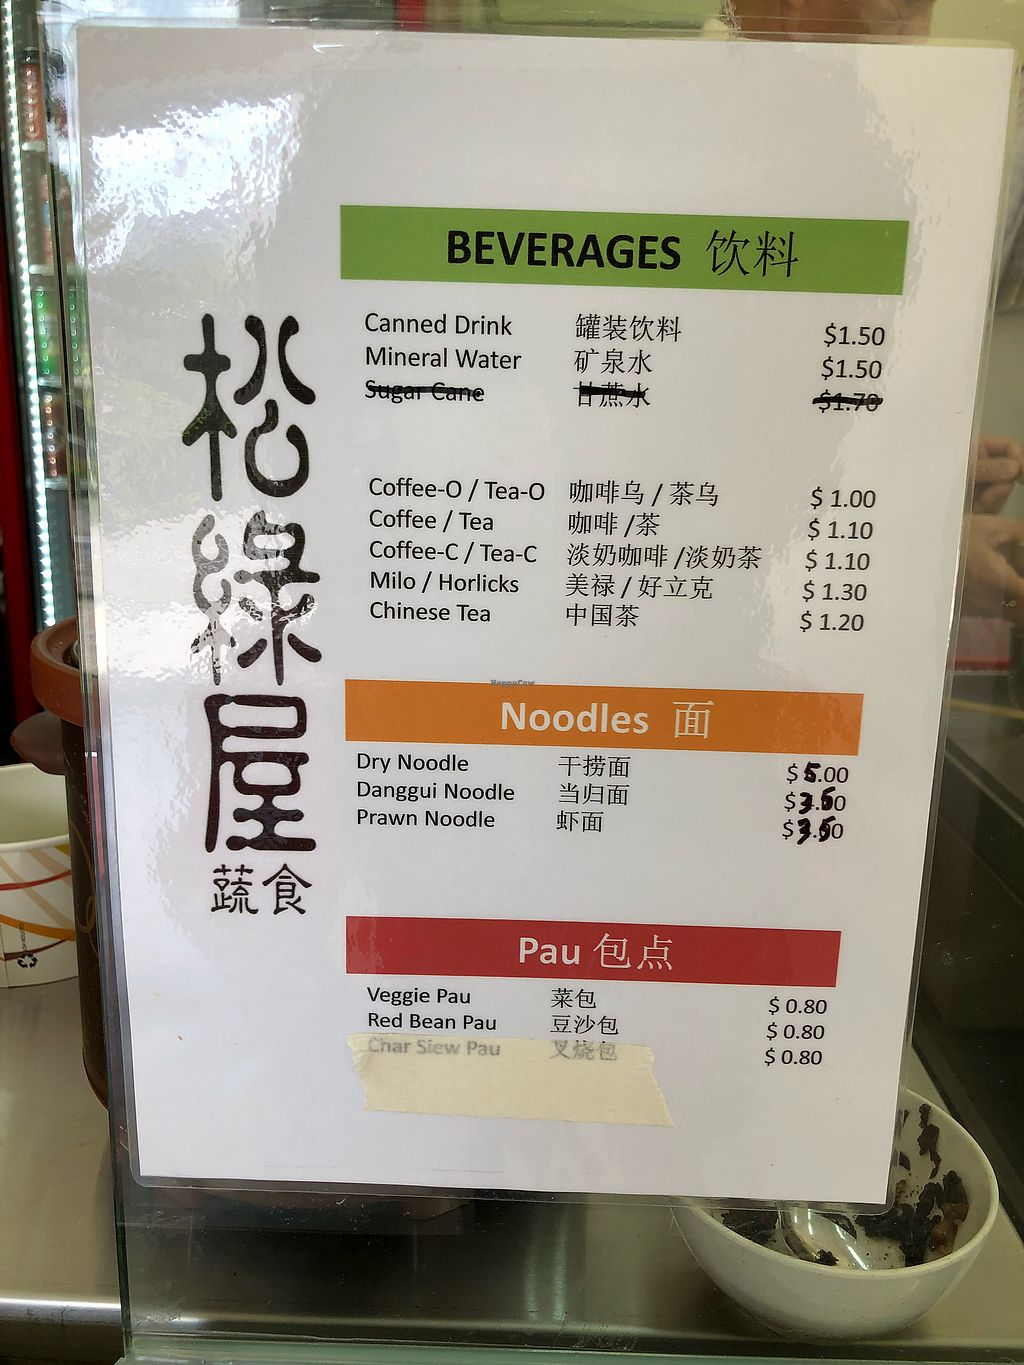 """Photo of Pine Green Vegan Cafe  by <a href=""""/members/profile/CherylQuincy"""">CherylQuincy</a> <br/>Chinese Menu <br/> January 18, 2018  - <a href='/contact/abuse/image/108370/347912'>Report</a>"""